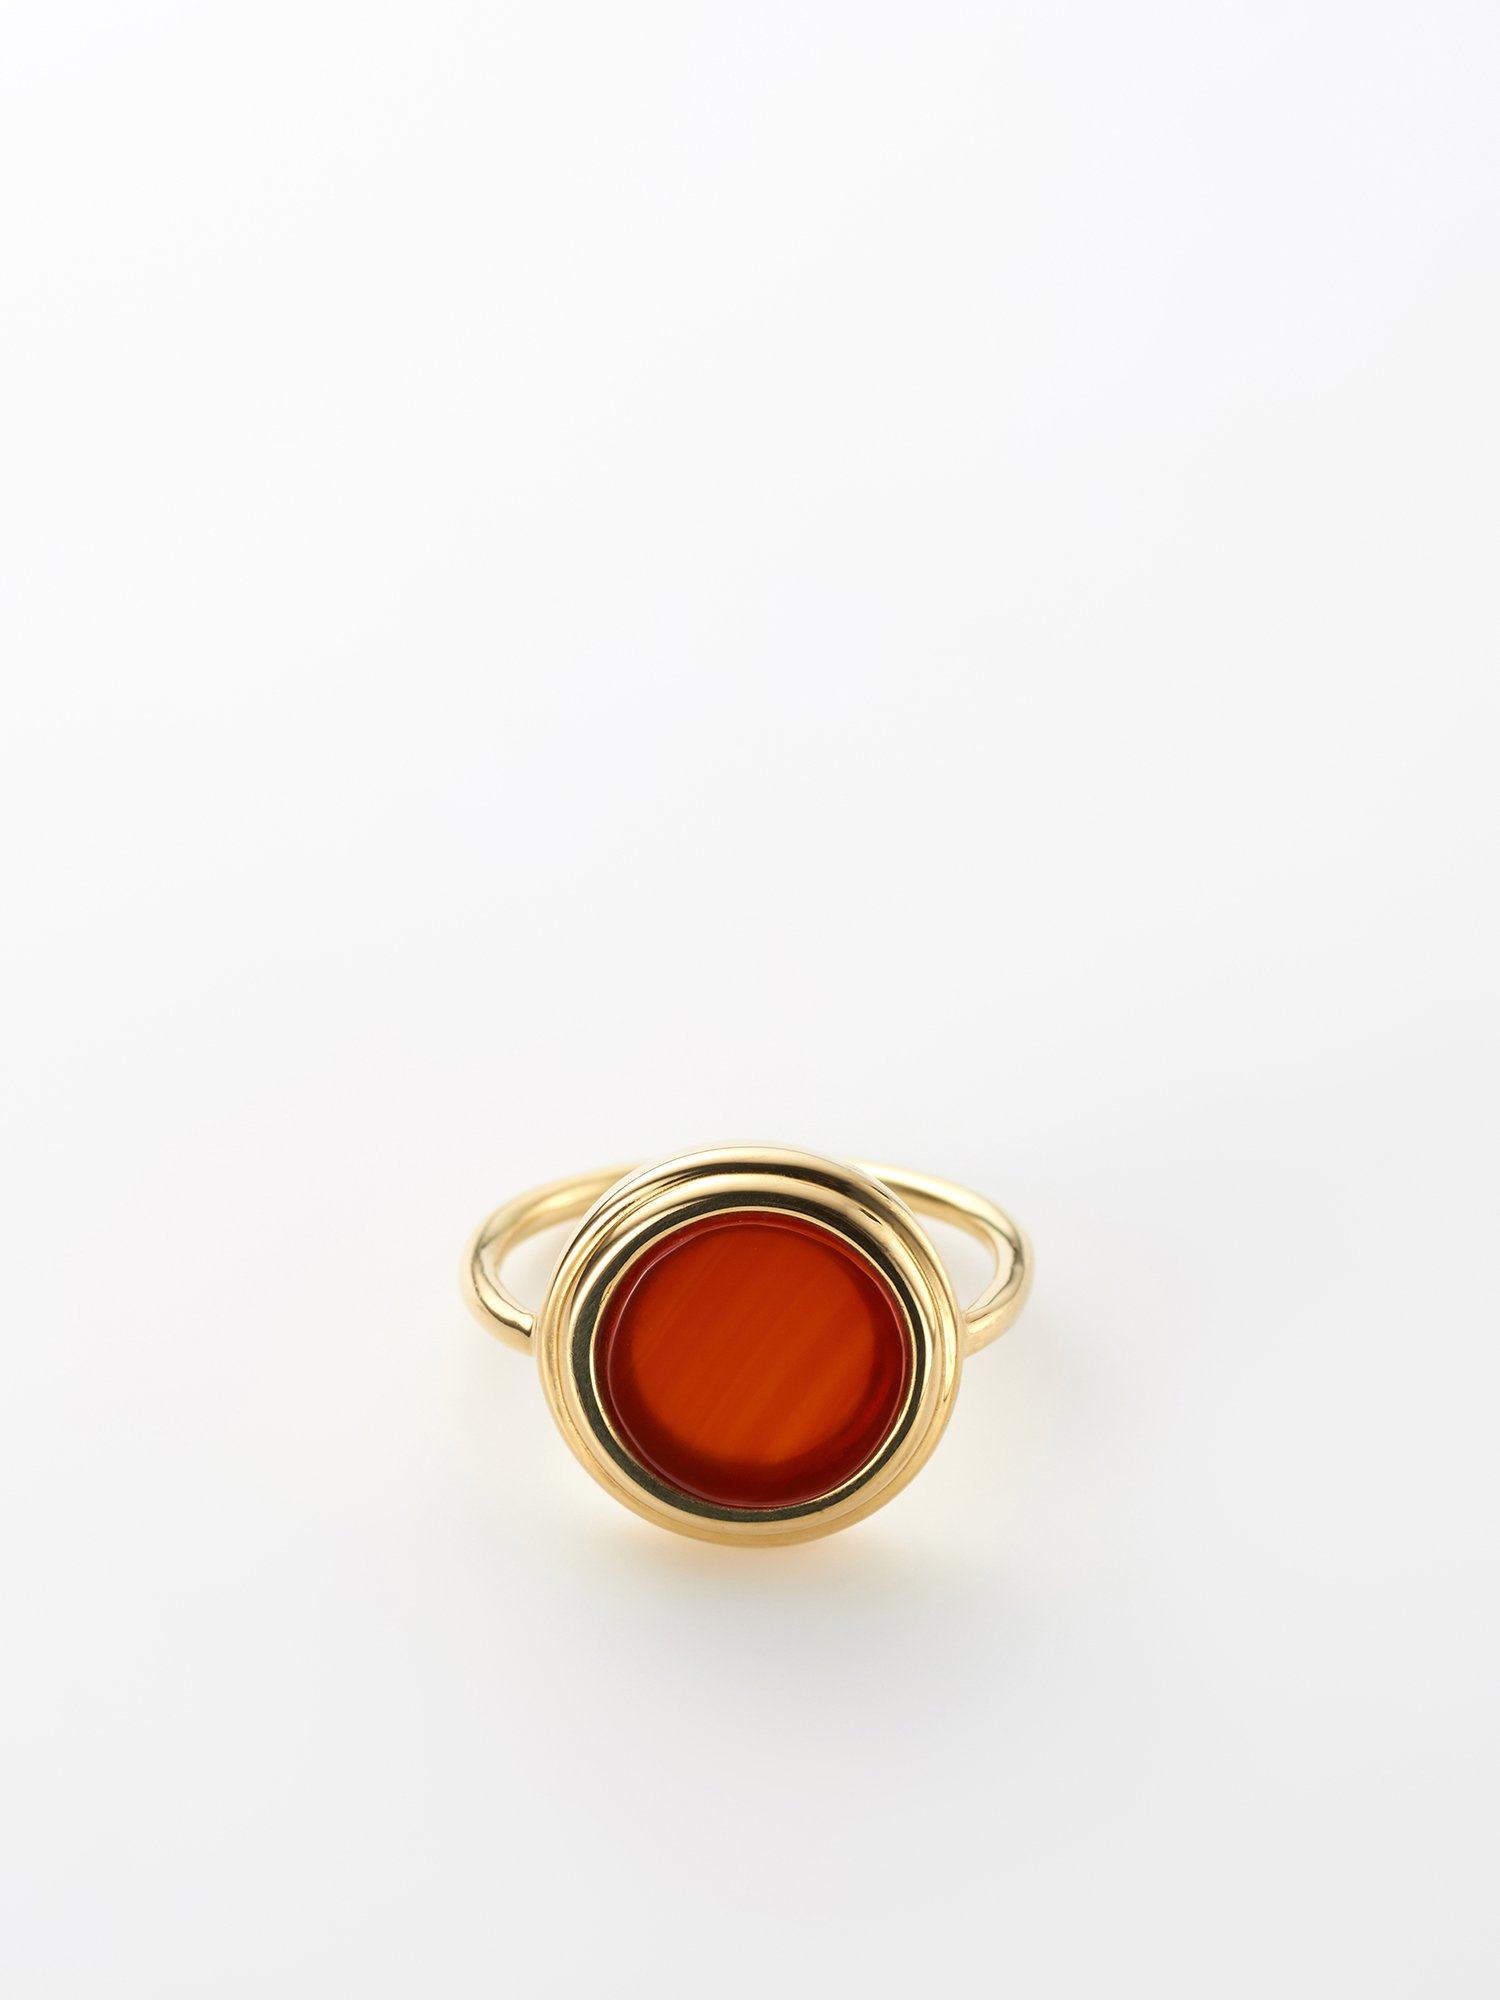 SOPHISTICATED VINTAGE / Planet ring / Carnelian